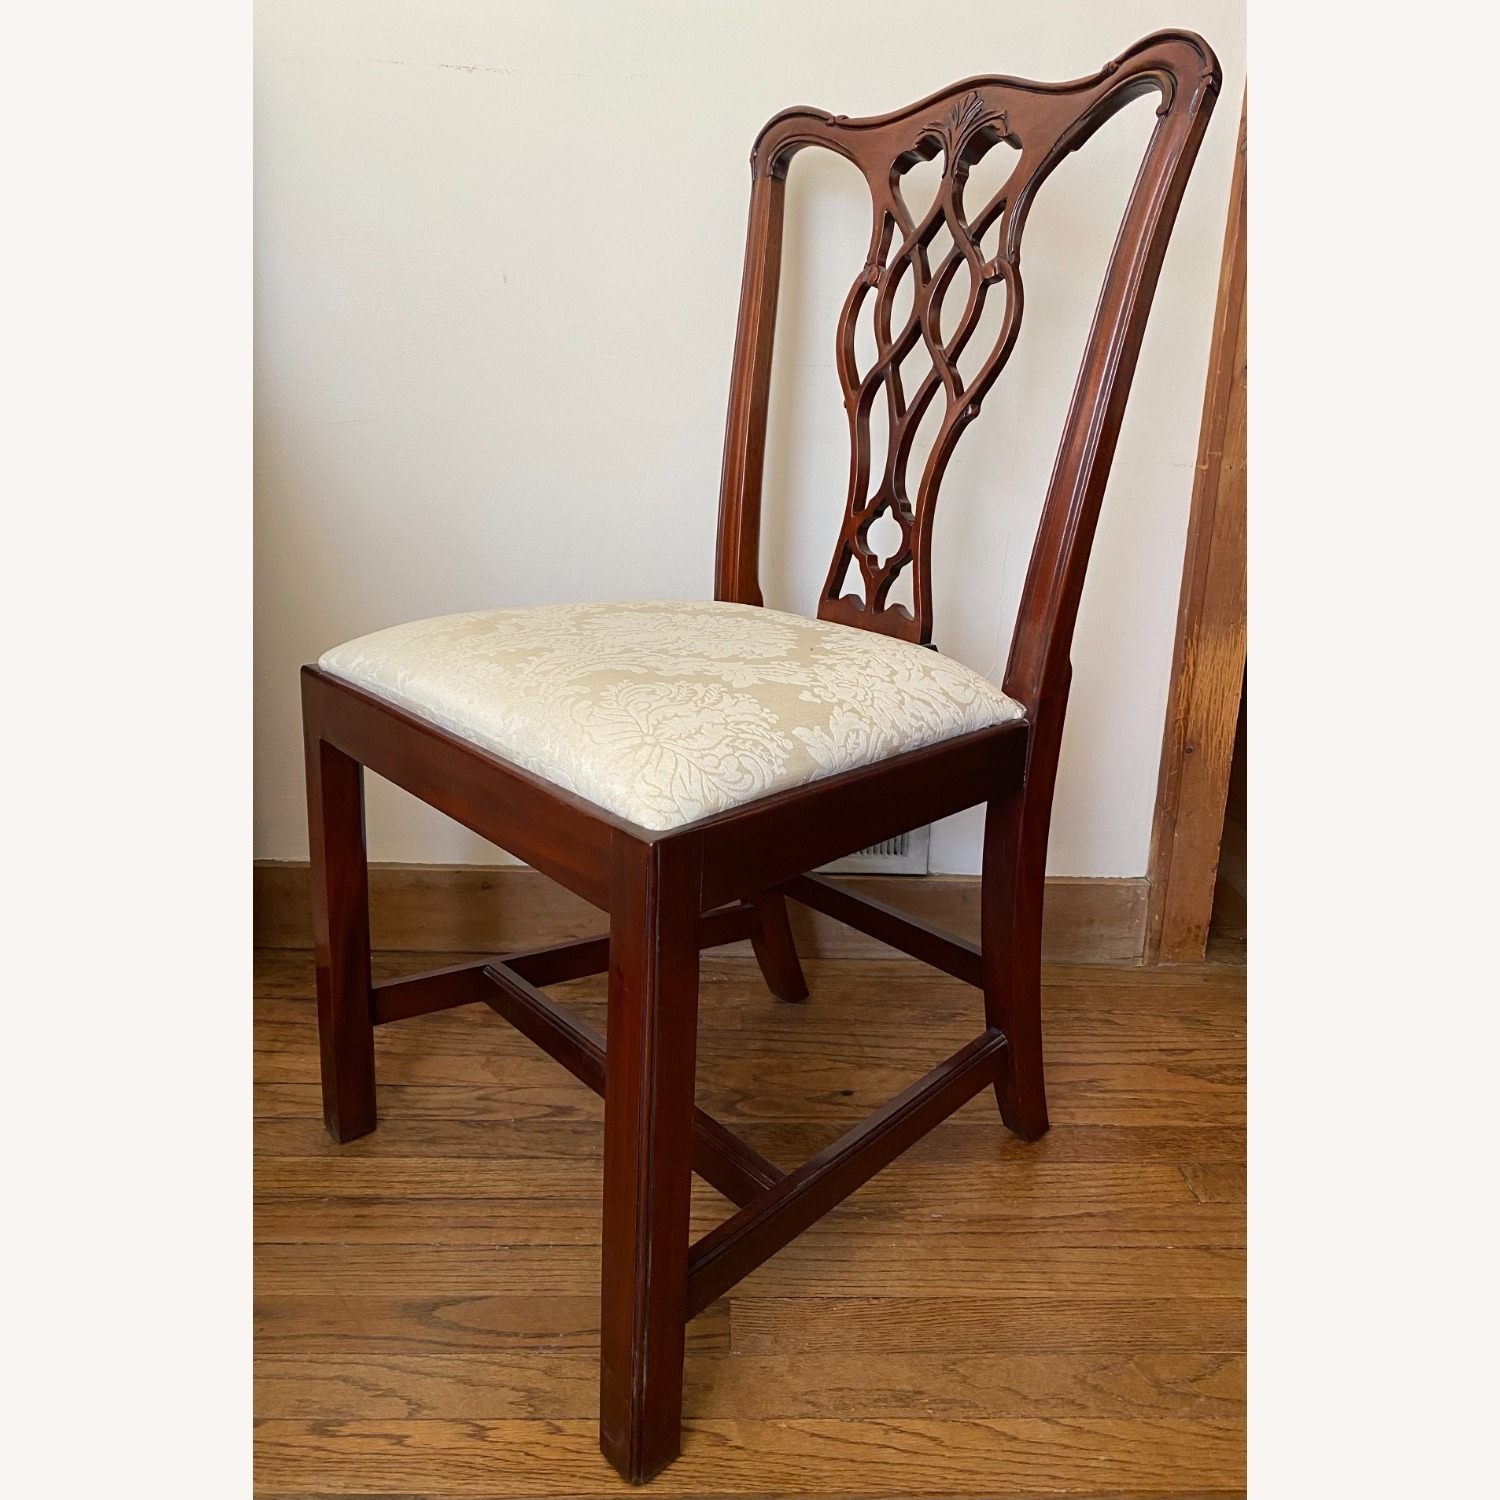 4 Councill Mahogany Chippendale Dining Chairs - image-2